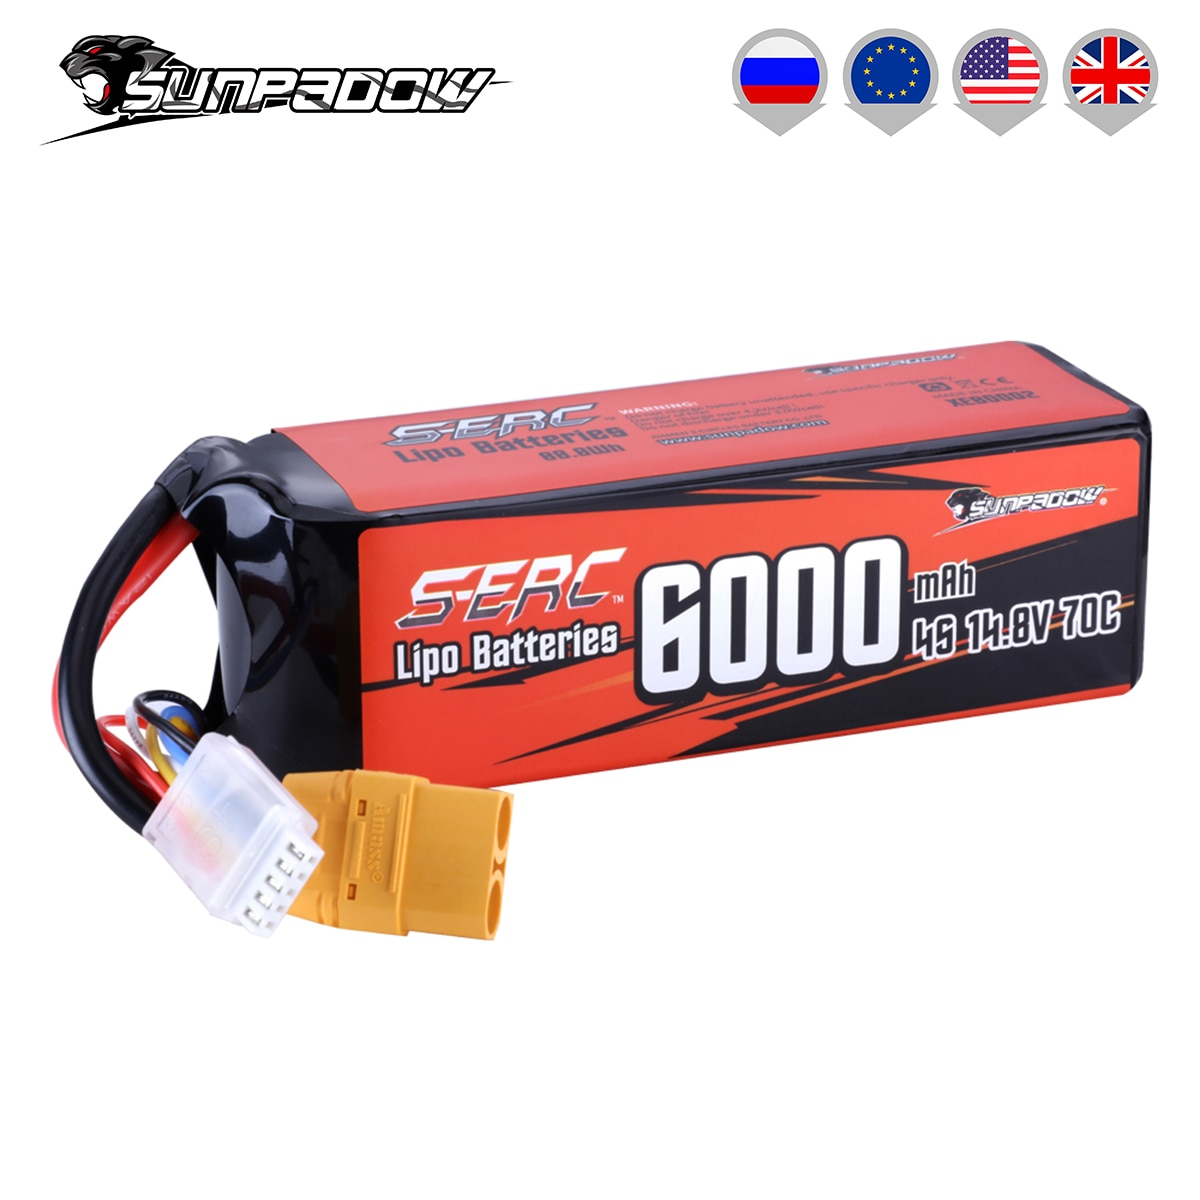 SUNPADOW 4S Lipo Battery 14.8V 6000mAh 70C Soft Pack with XT90 Connector for RC Buggy Truggy Vehicle